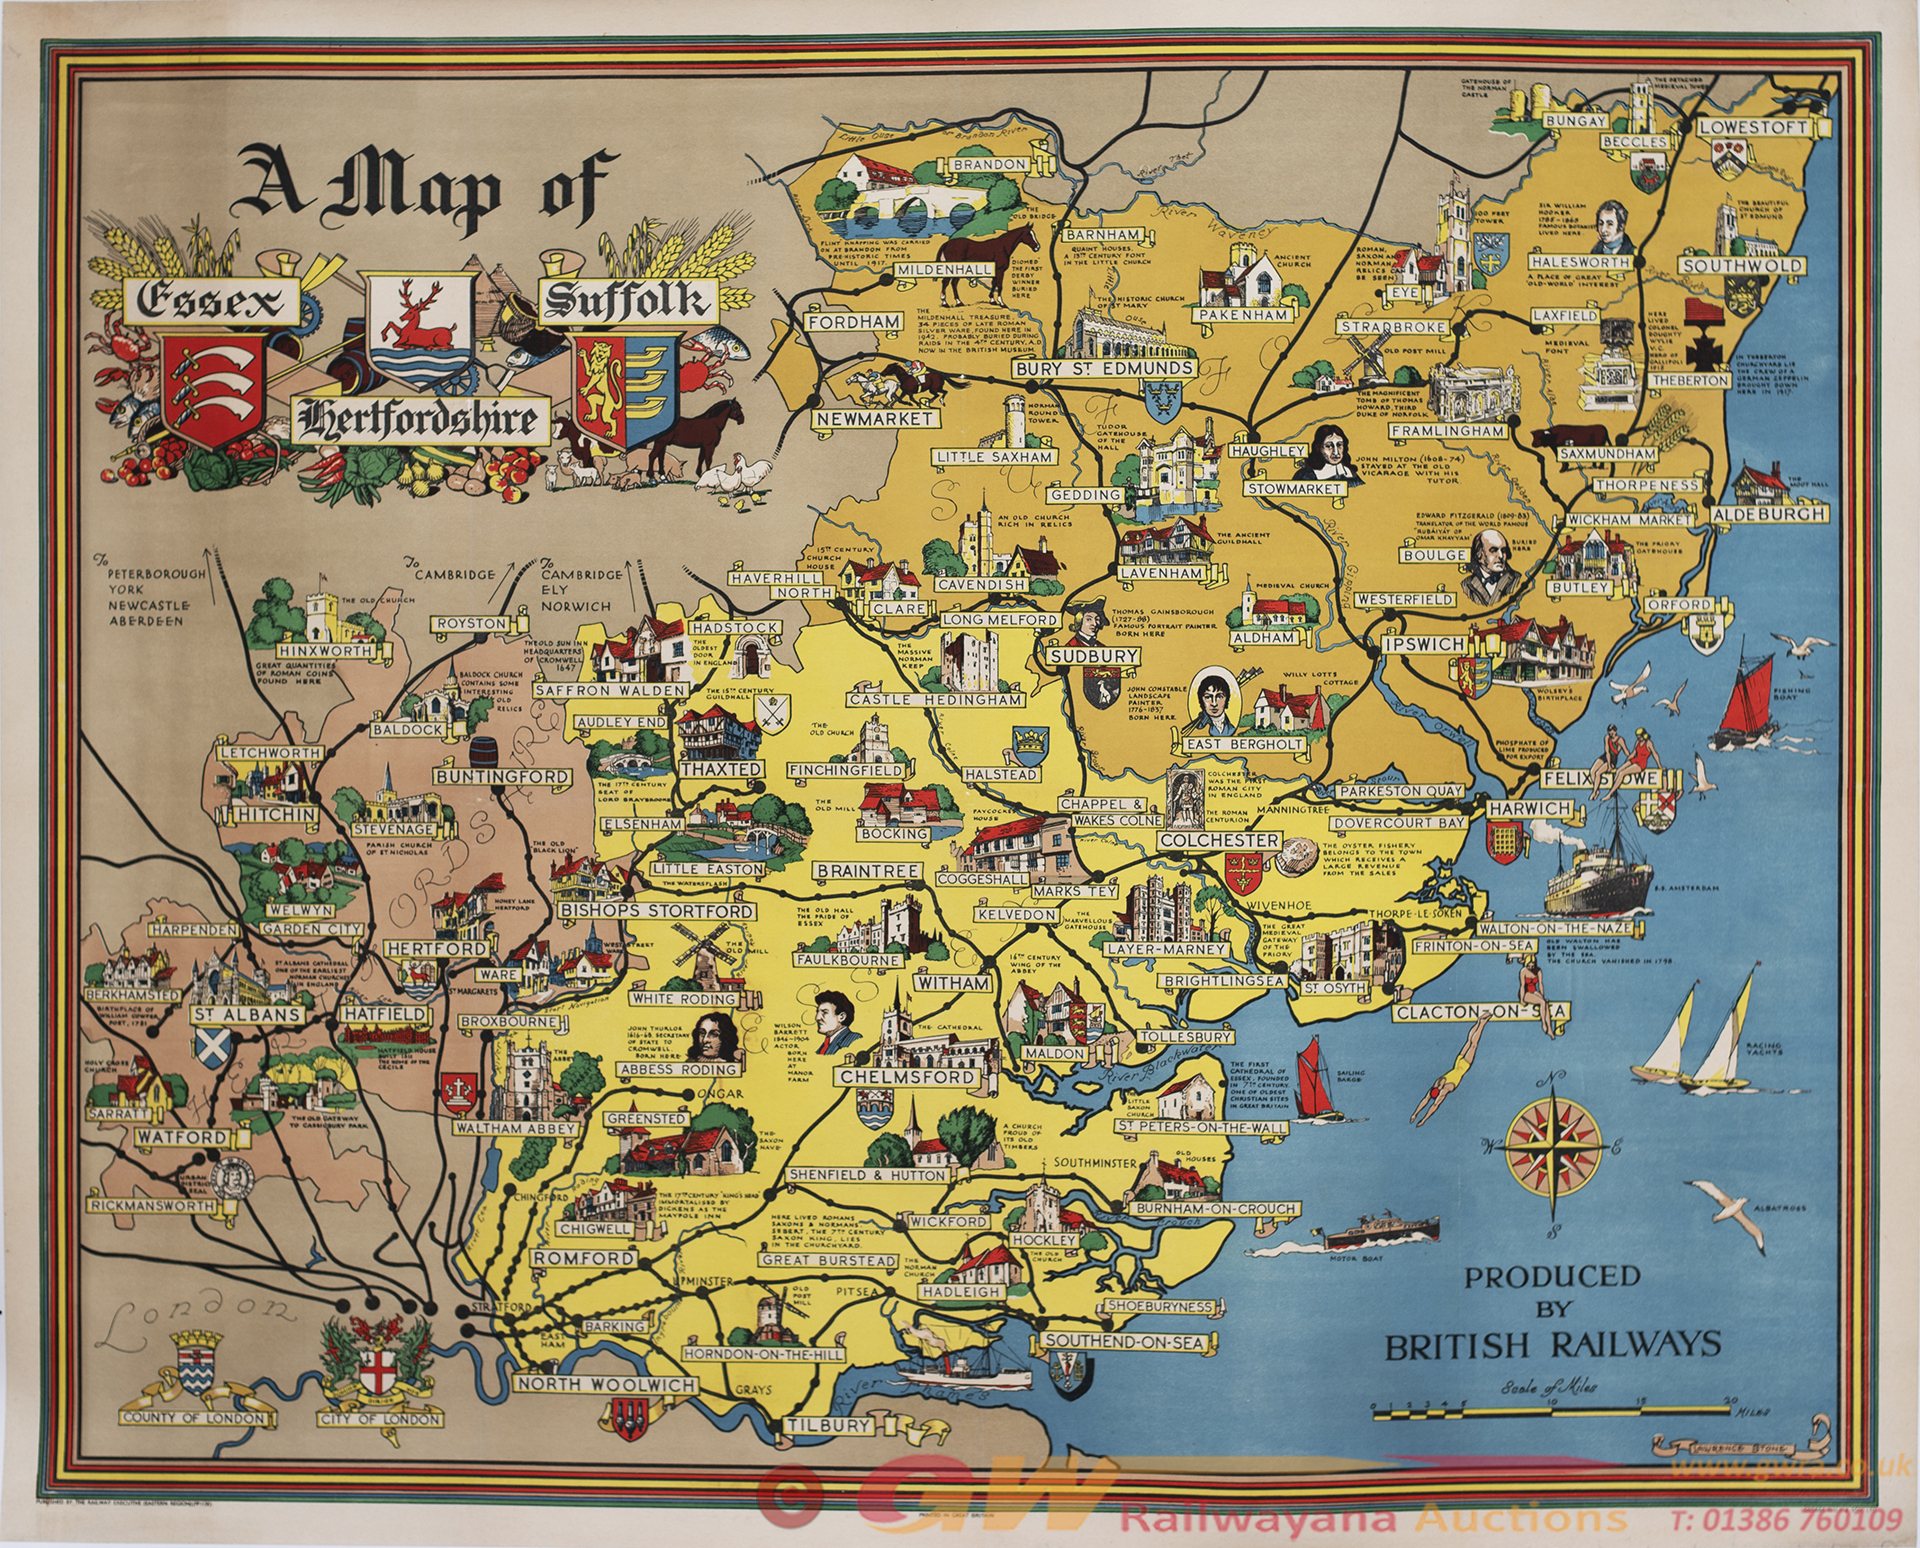 Poster BR(E) A MAP OF ESSEX HERTFORDSHIRE AND